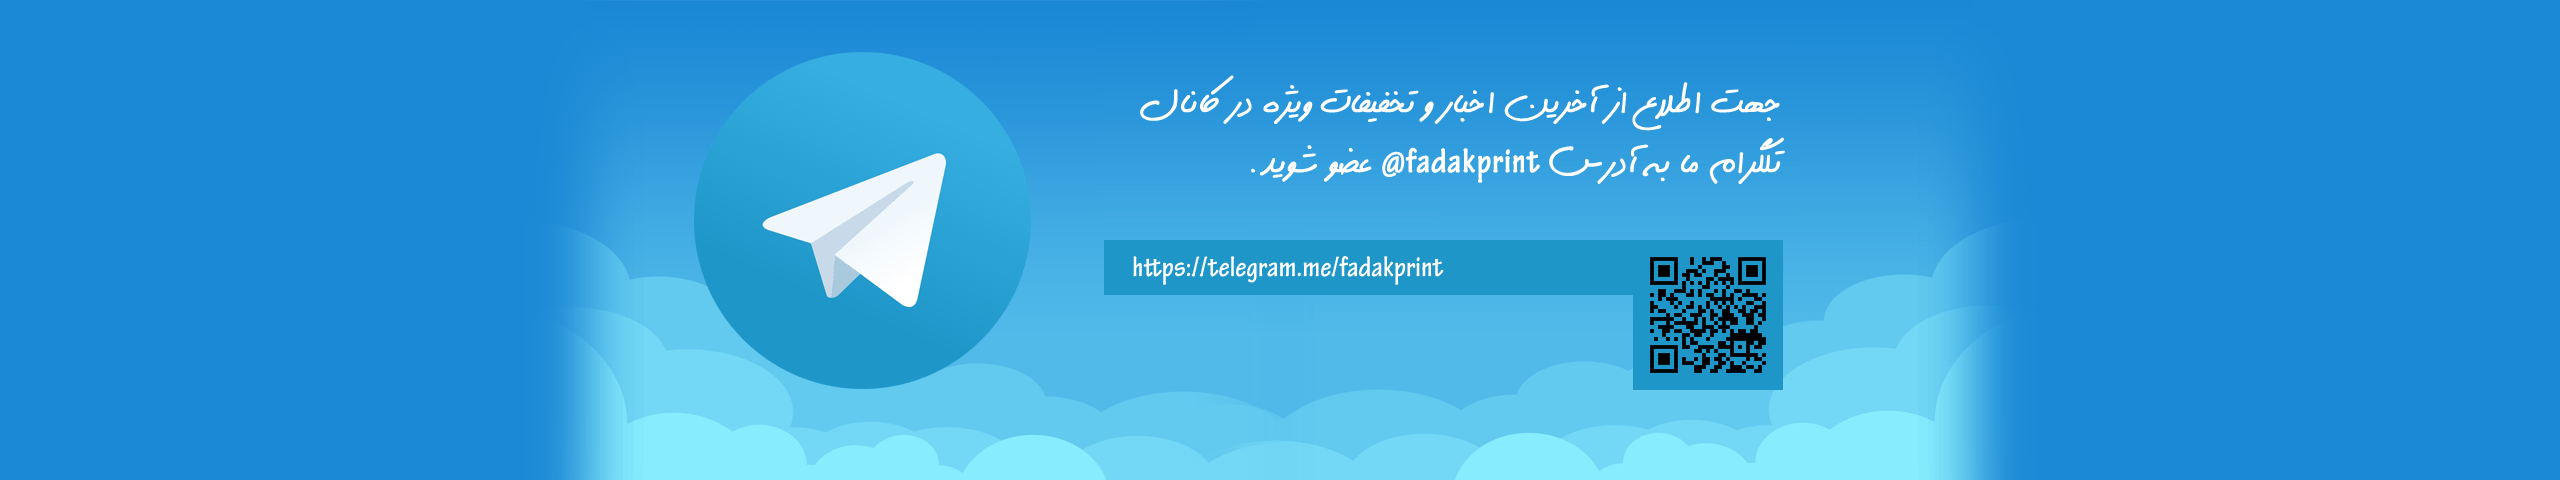 fadakprint-telegram4